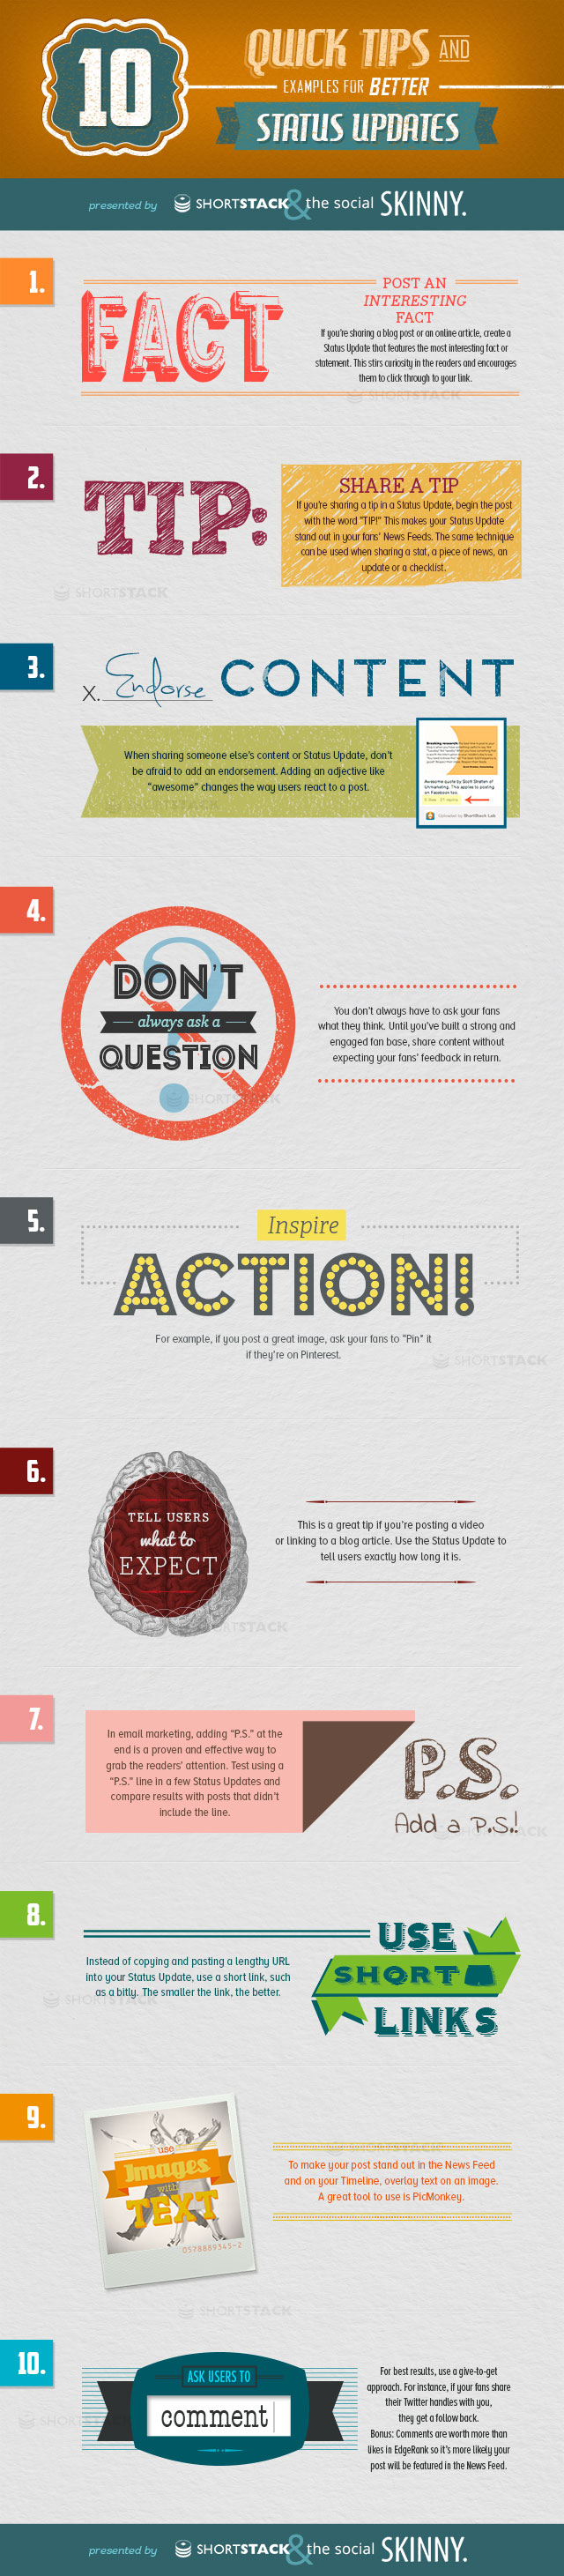 Infographie 10 - tips-for-better-status-updates